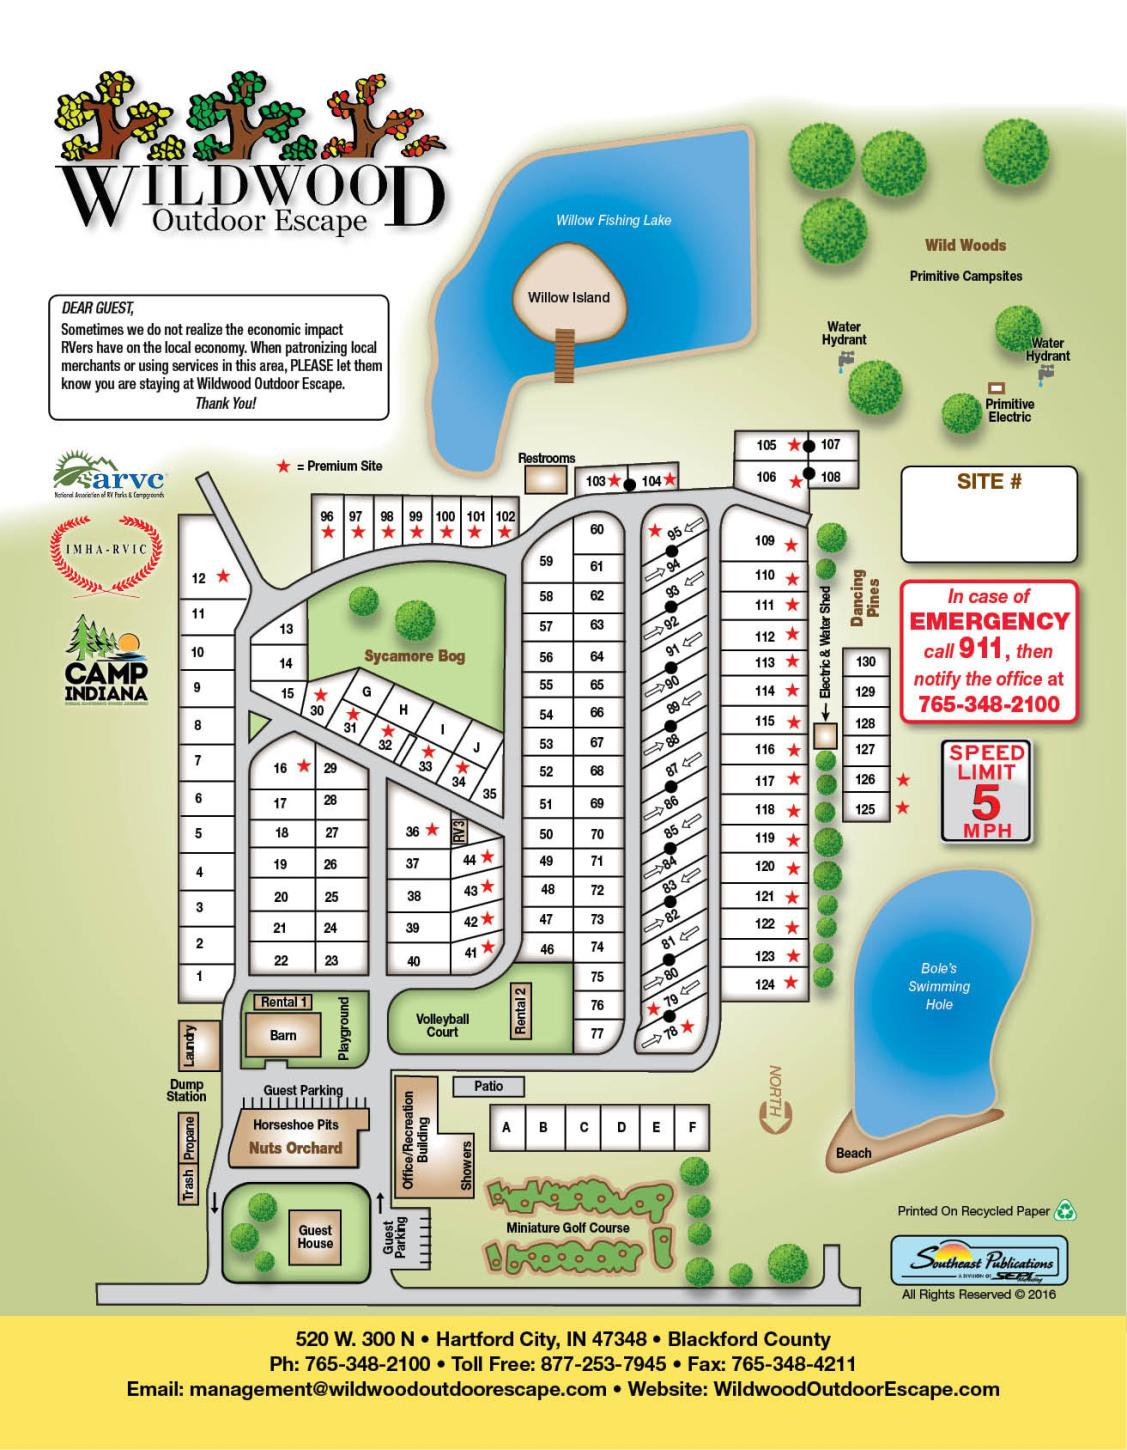 Image of campground layout map with sites numbered